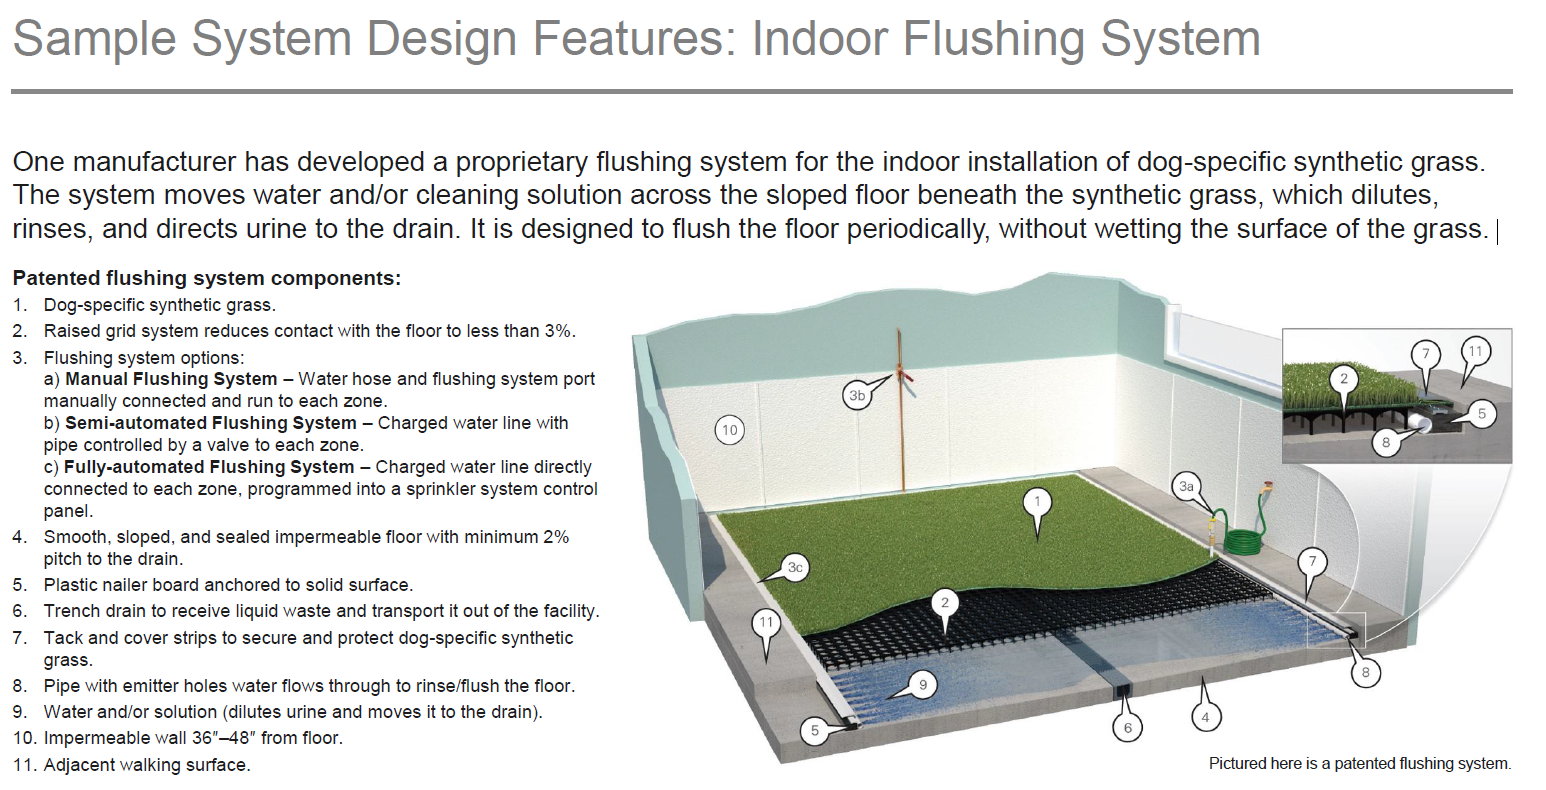 Flushing System Sample System Design.PNG